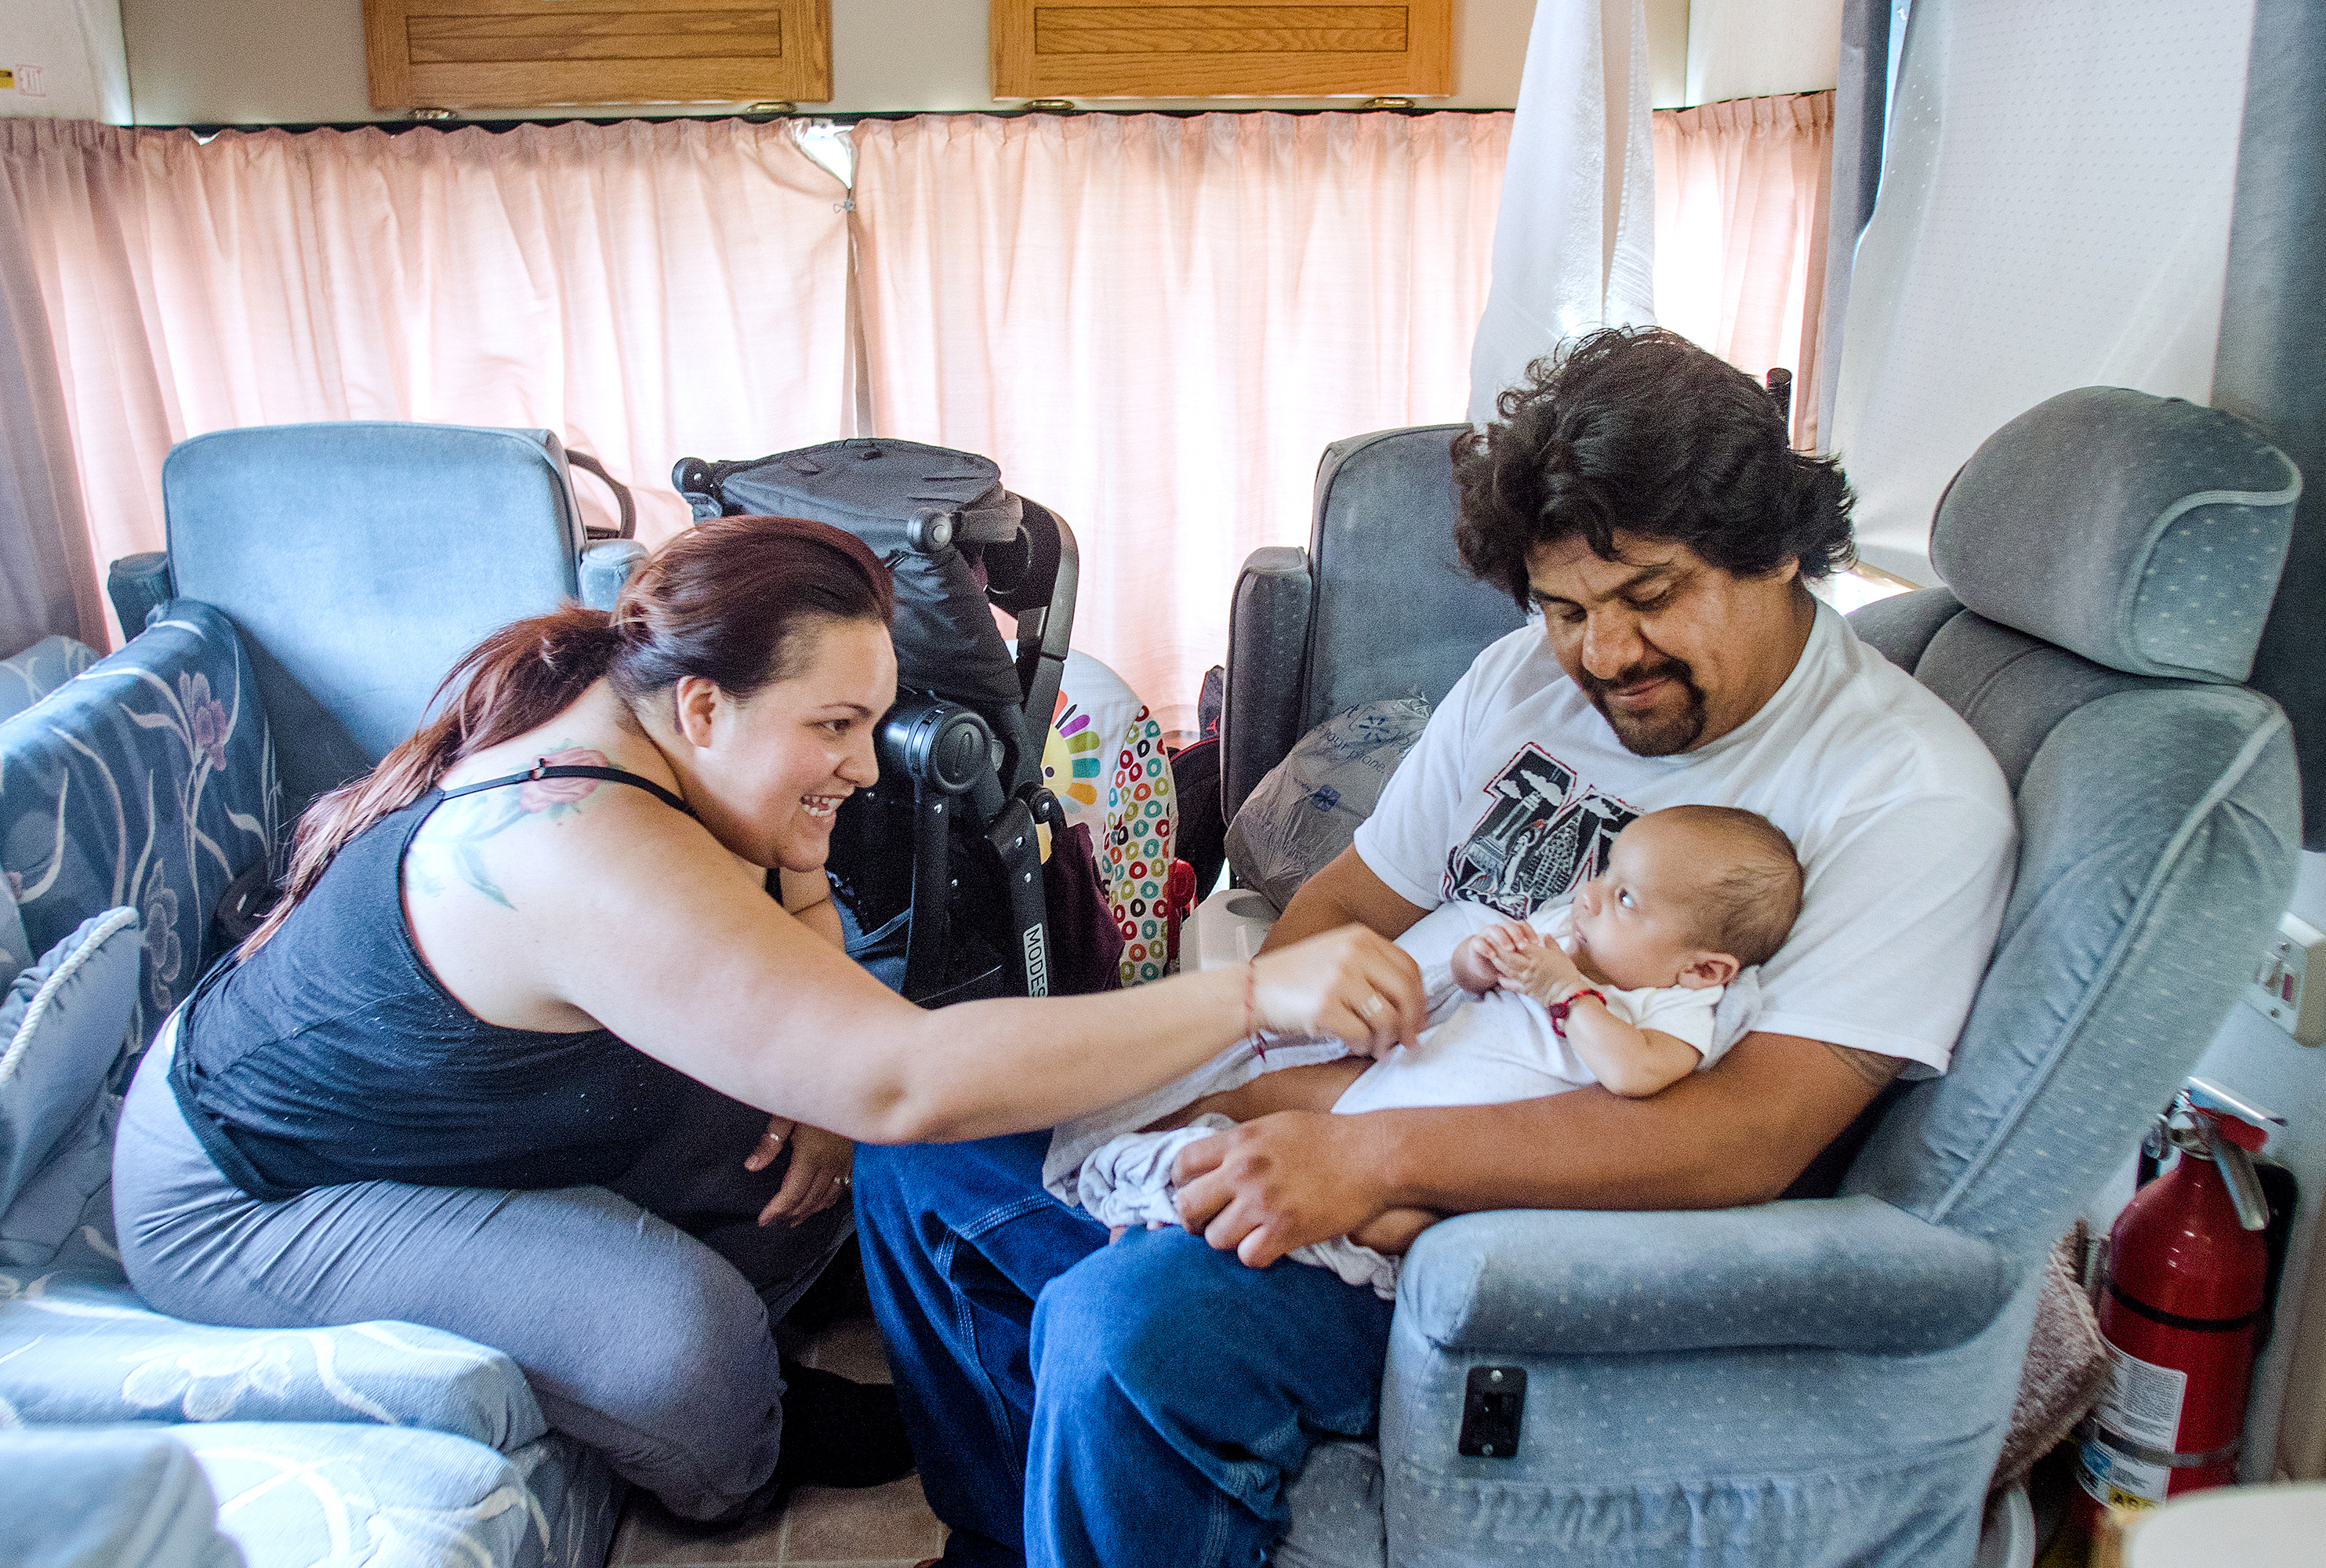 Alex and Miguel, of Paso Robles, spend time with their 4-month-old daughter, Mia, in their RV parked on El Camino Real.